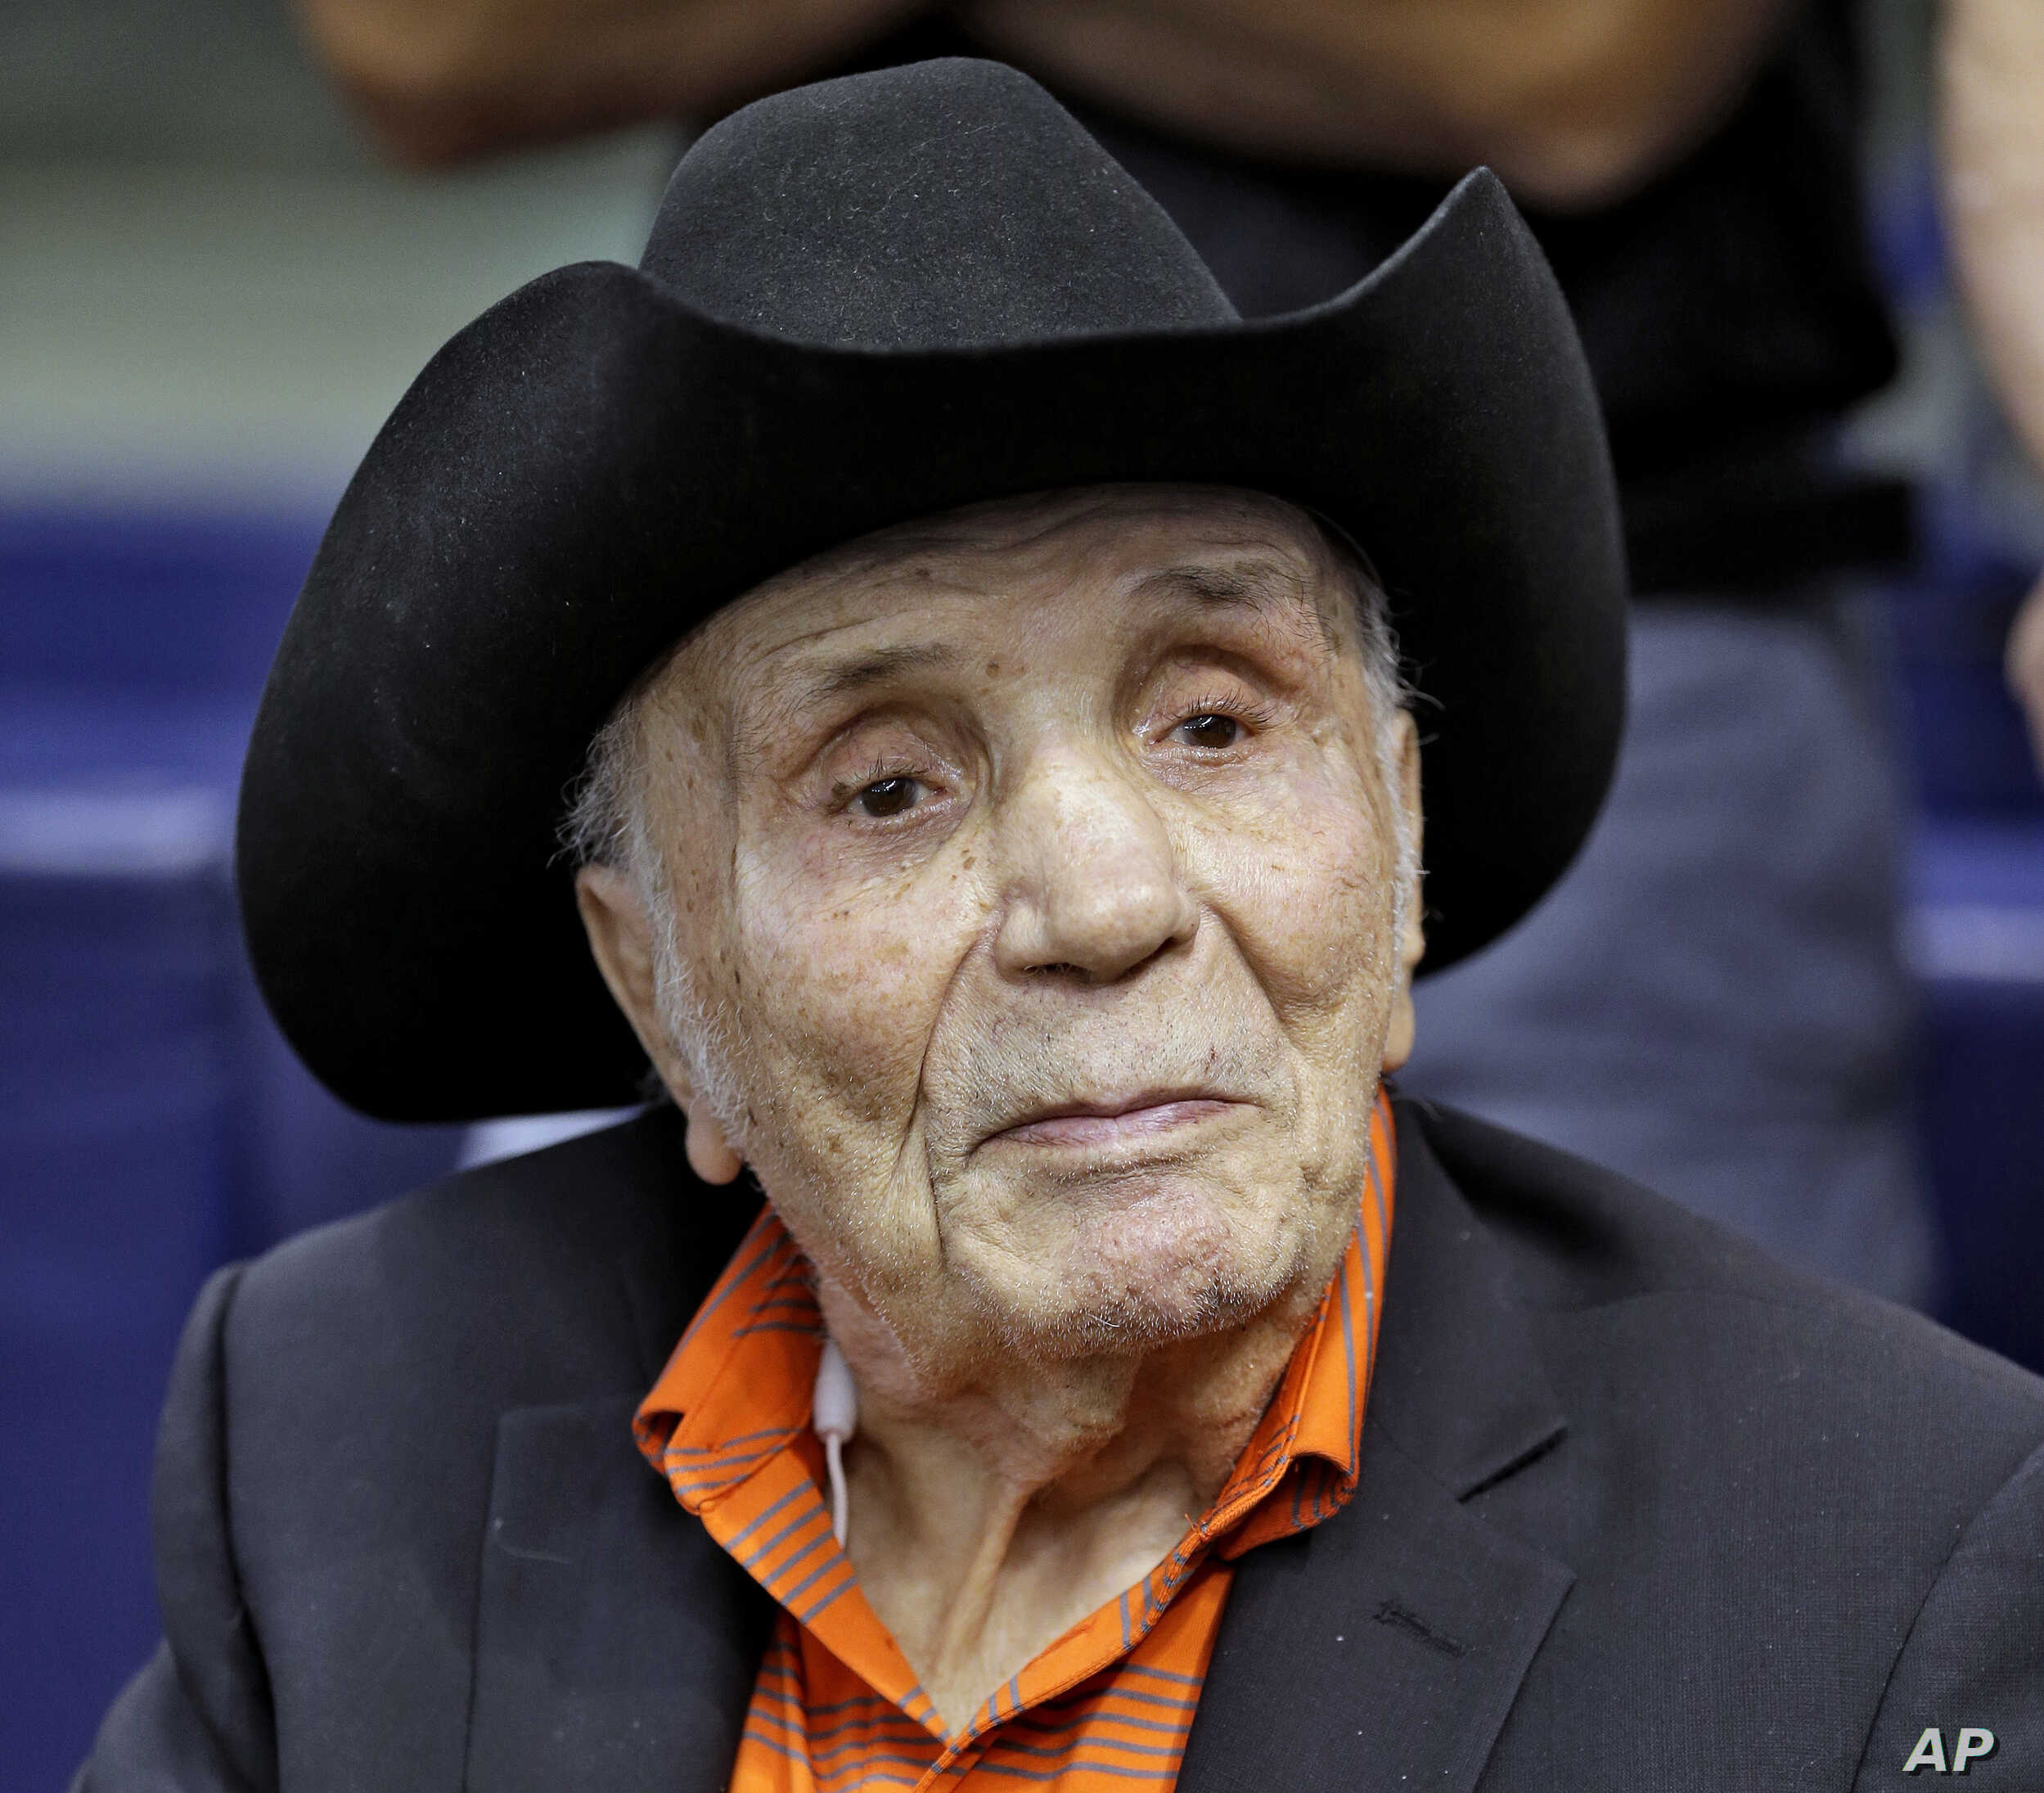 FILE - Jake LaMotta watches batting practice before a baseball game between the Tampa Bay Rays and the New York Yankees, in St. Petersburg, Florida, Sept. 15, 2015.